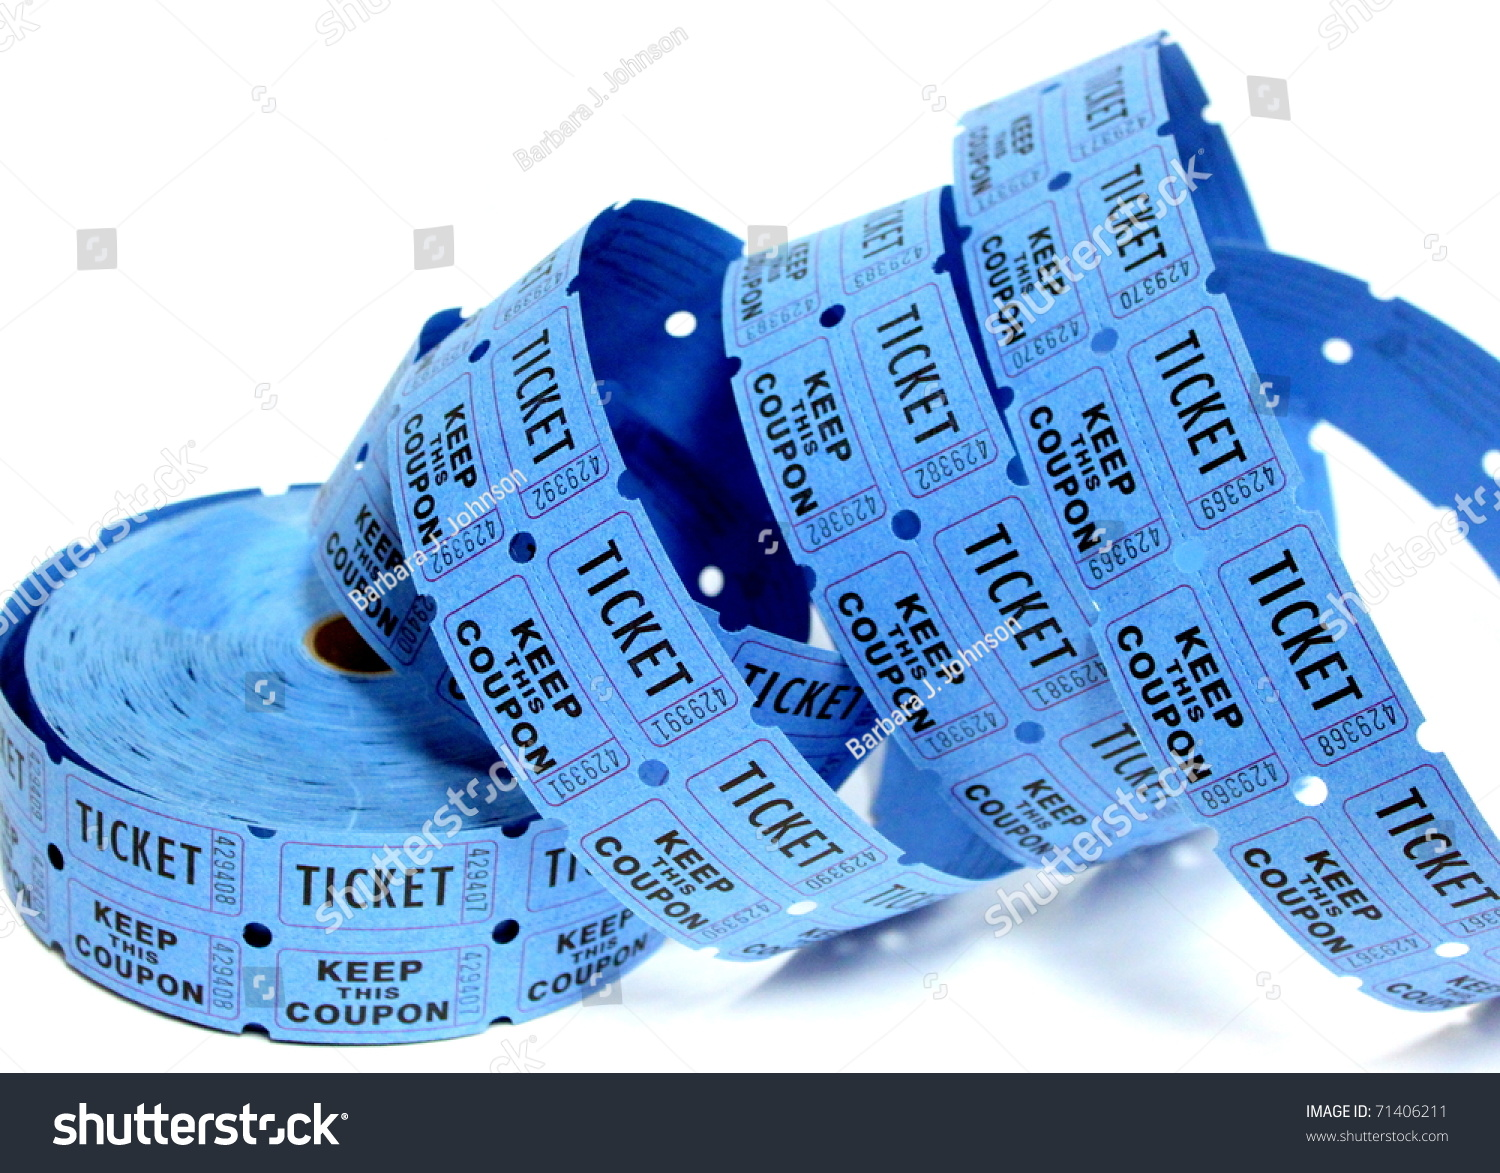 blue raffle tickets stock photo shutterstock blue raffle tickets